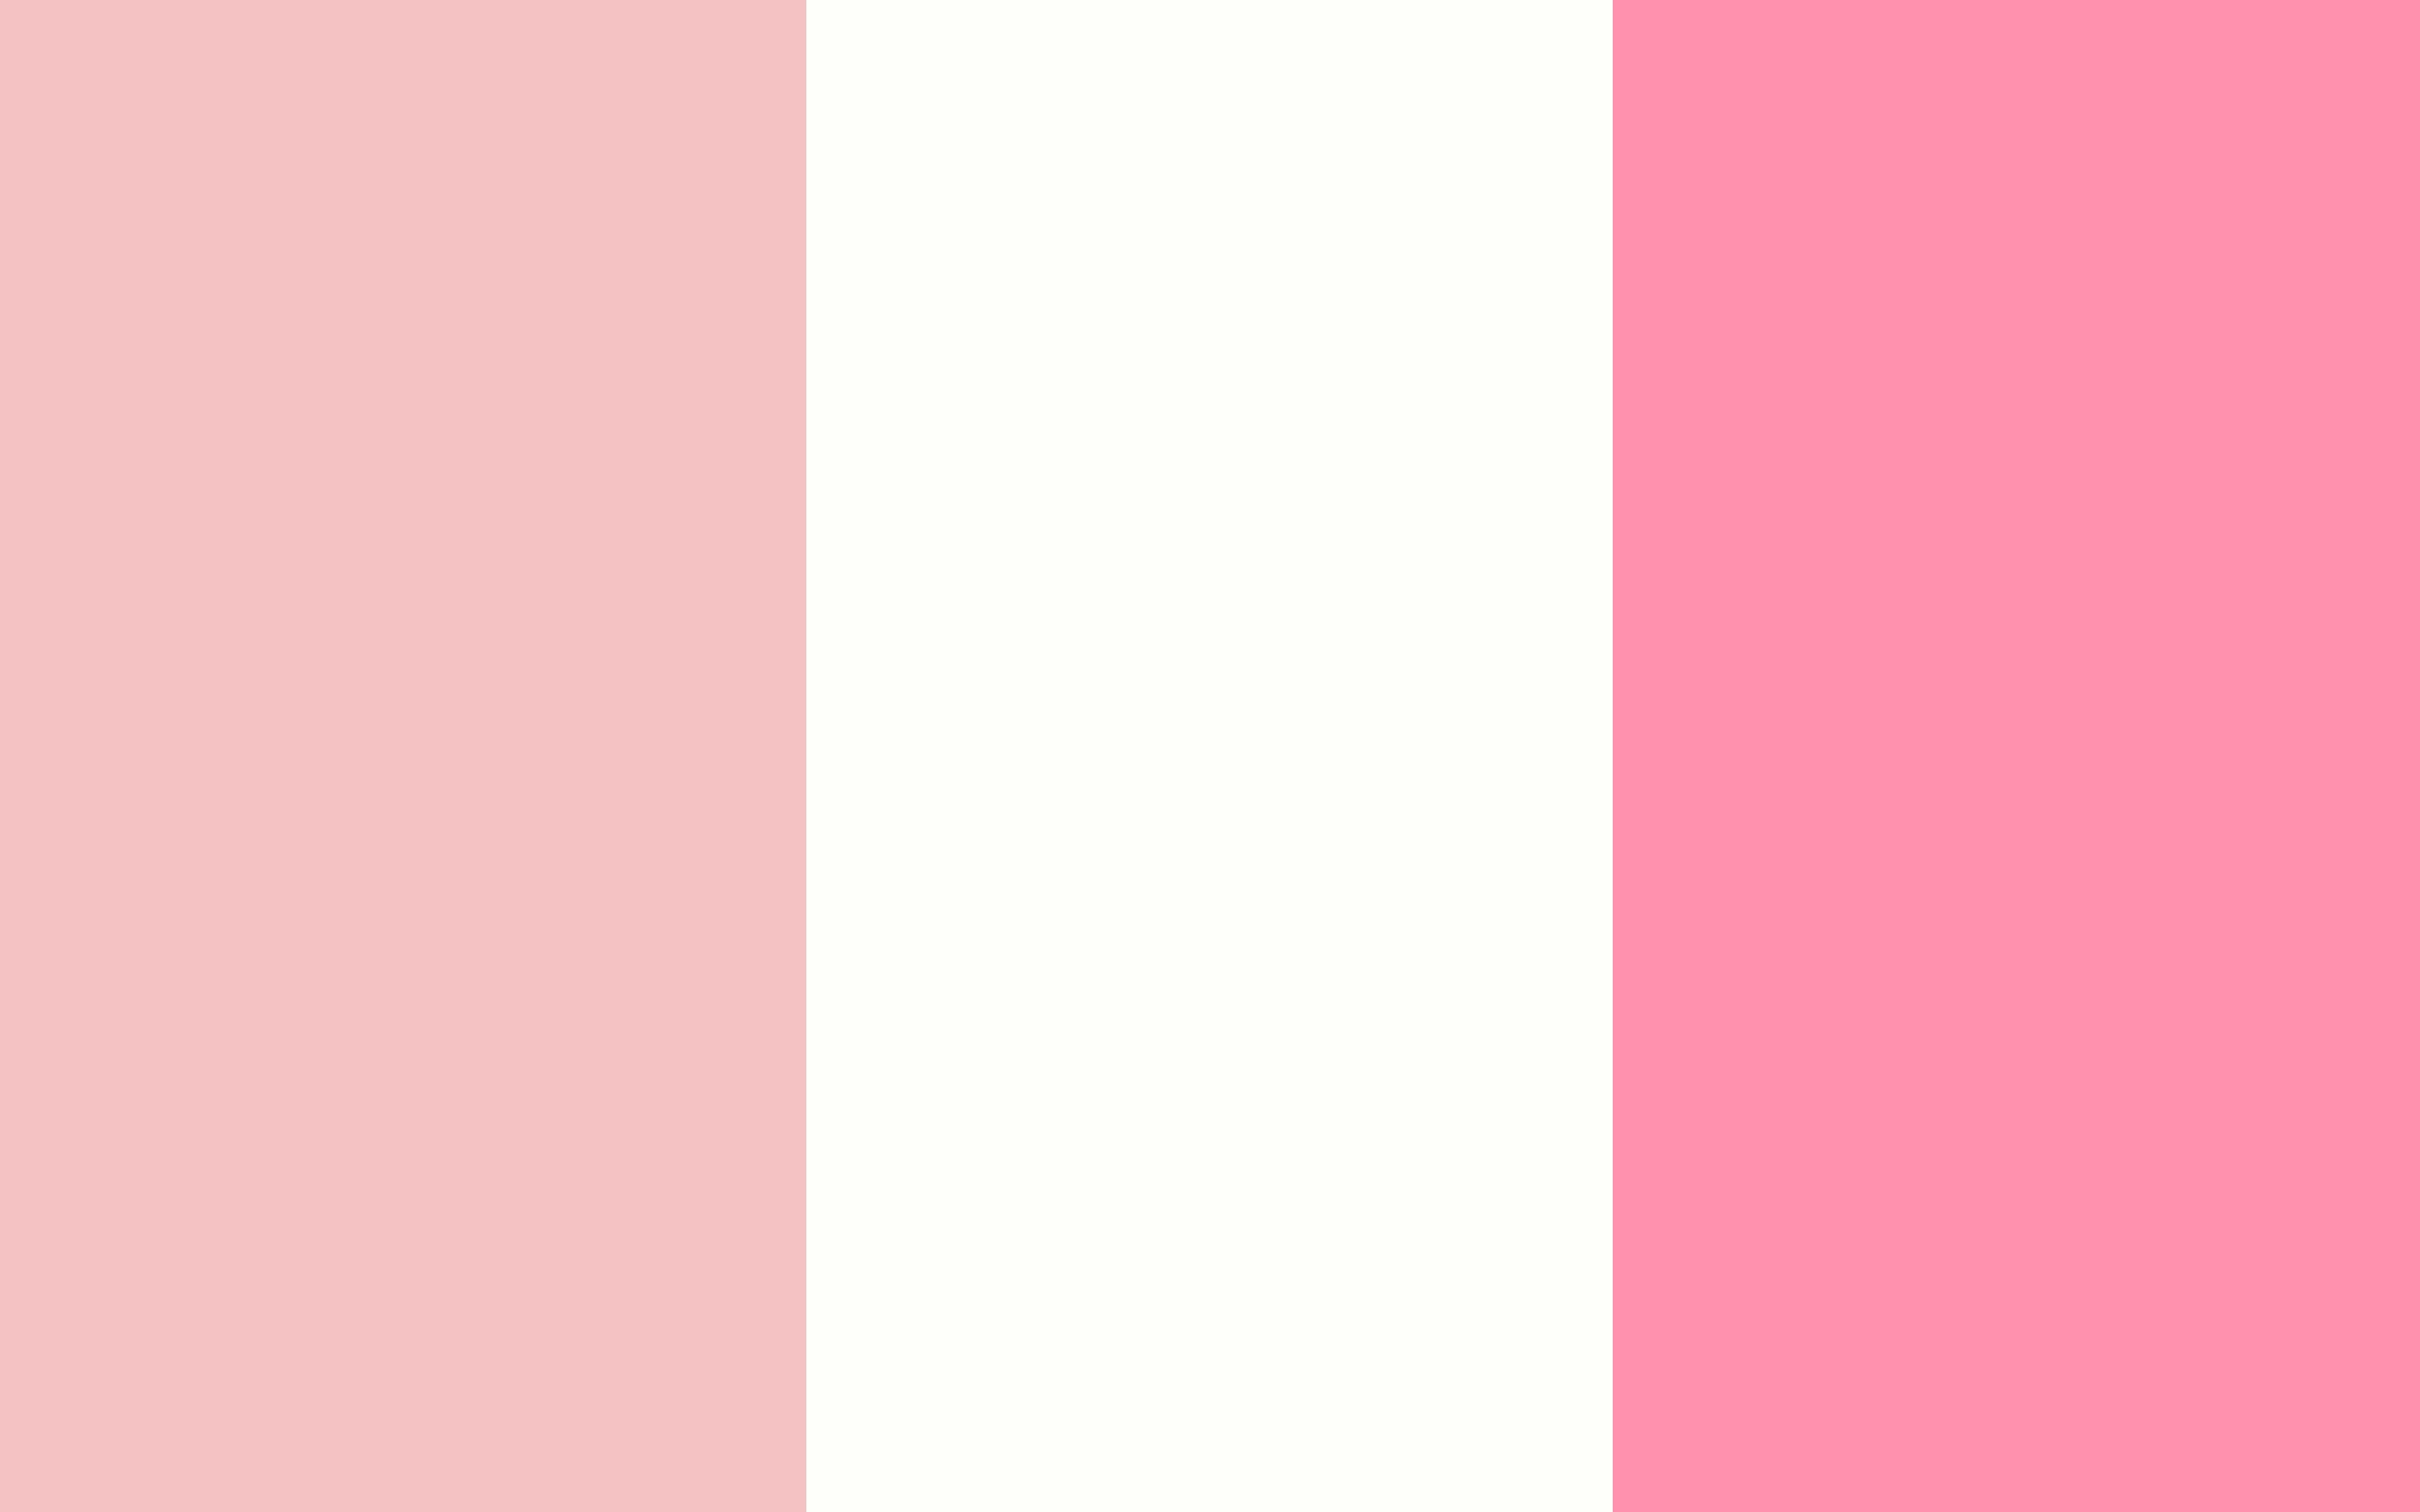 Baby Pink Baby Powder and Baker Miller Pink Three Color Background 2560x1600